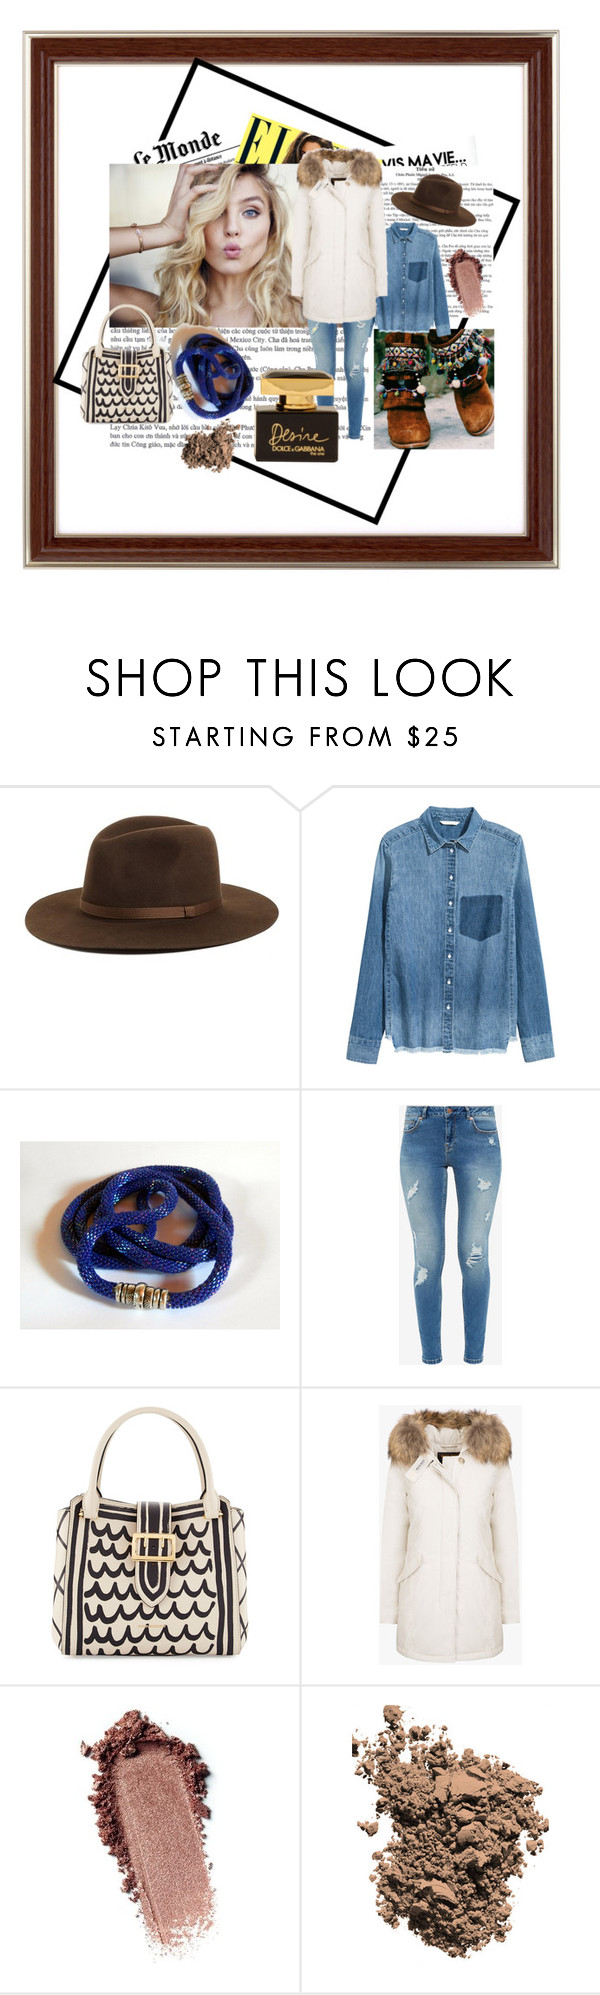 """""""Winter with jeans!"""" by laura-gas ❤ liked on Polyvore featuring Brixton, Ted Baker, Burberry and Dolce&Gabbana"""